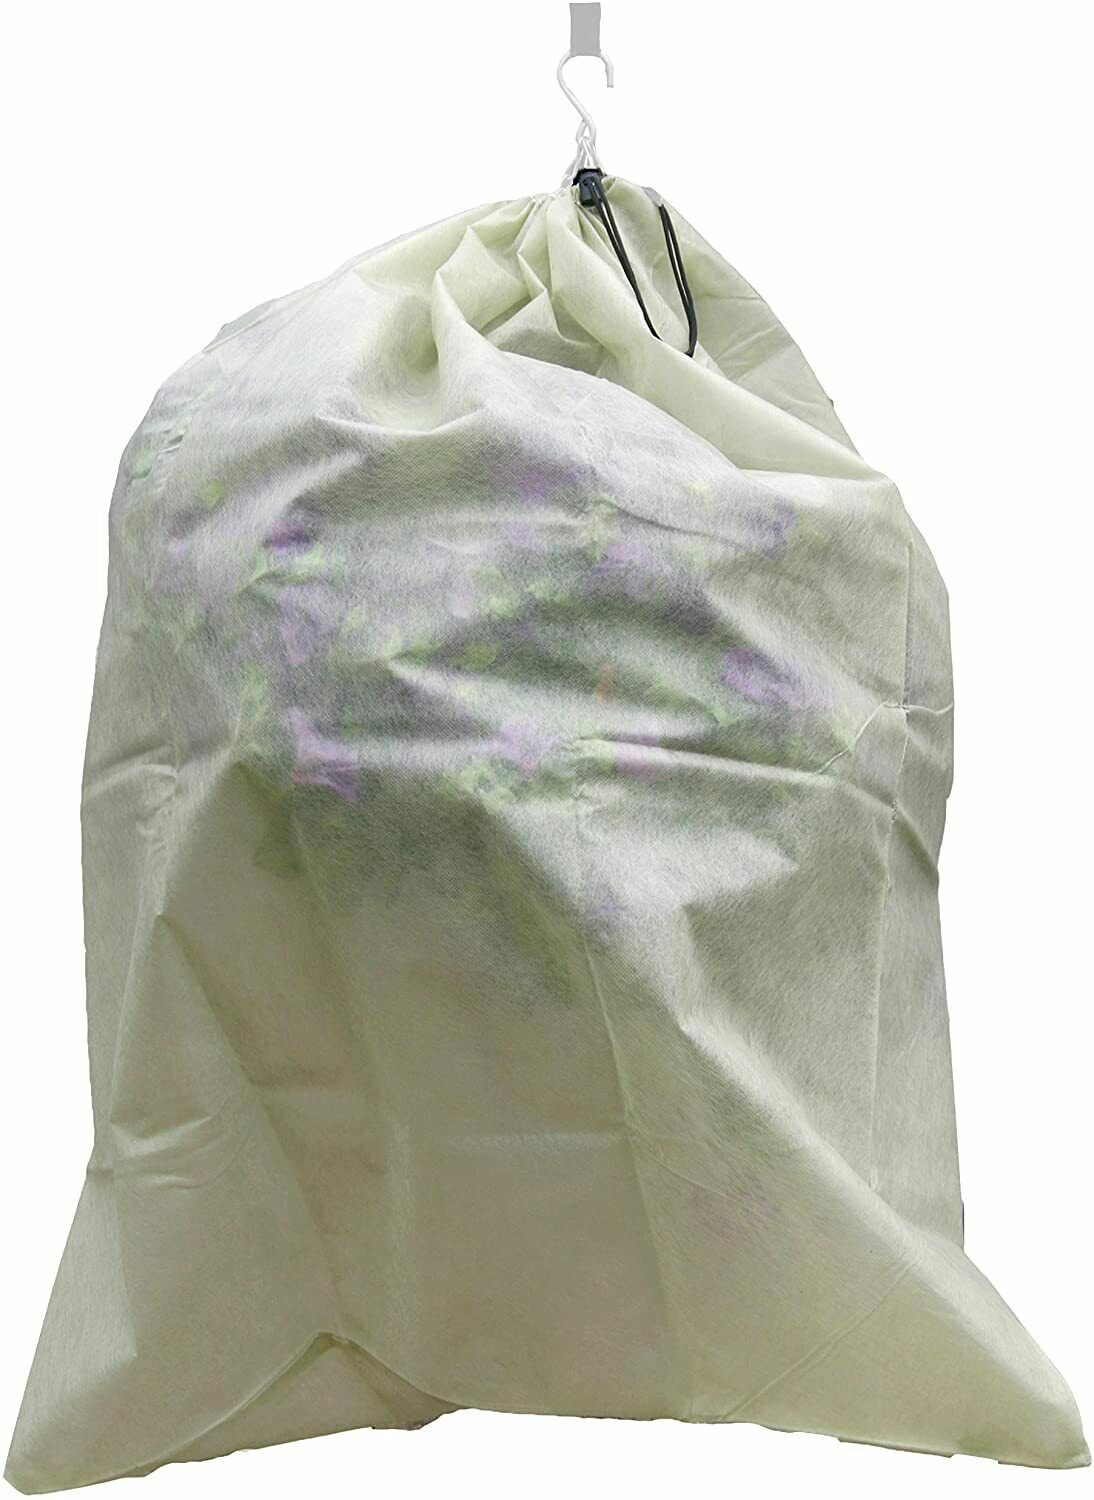 Pack Of 3 Medium Plant Fleece Jacket Garden Lawn Cover Transparent Protection